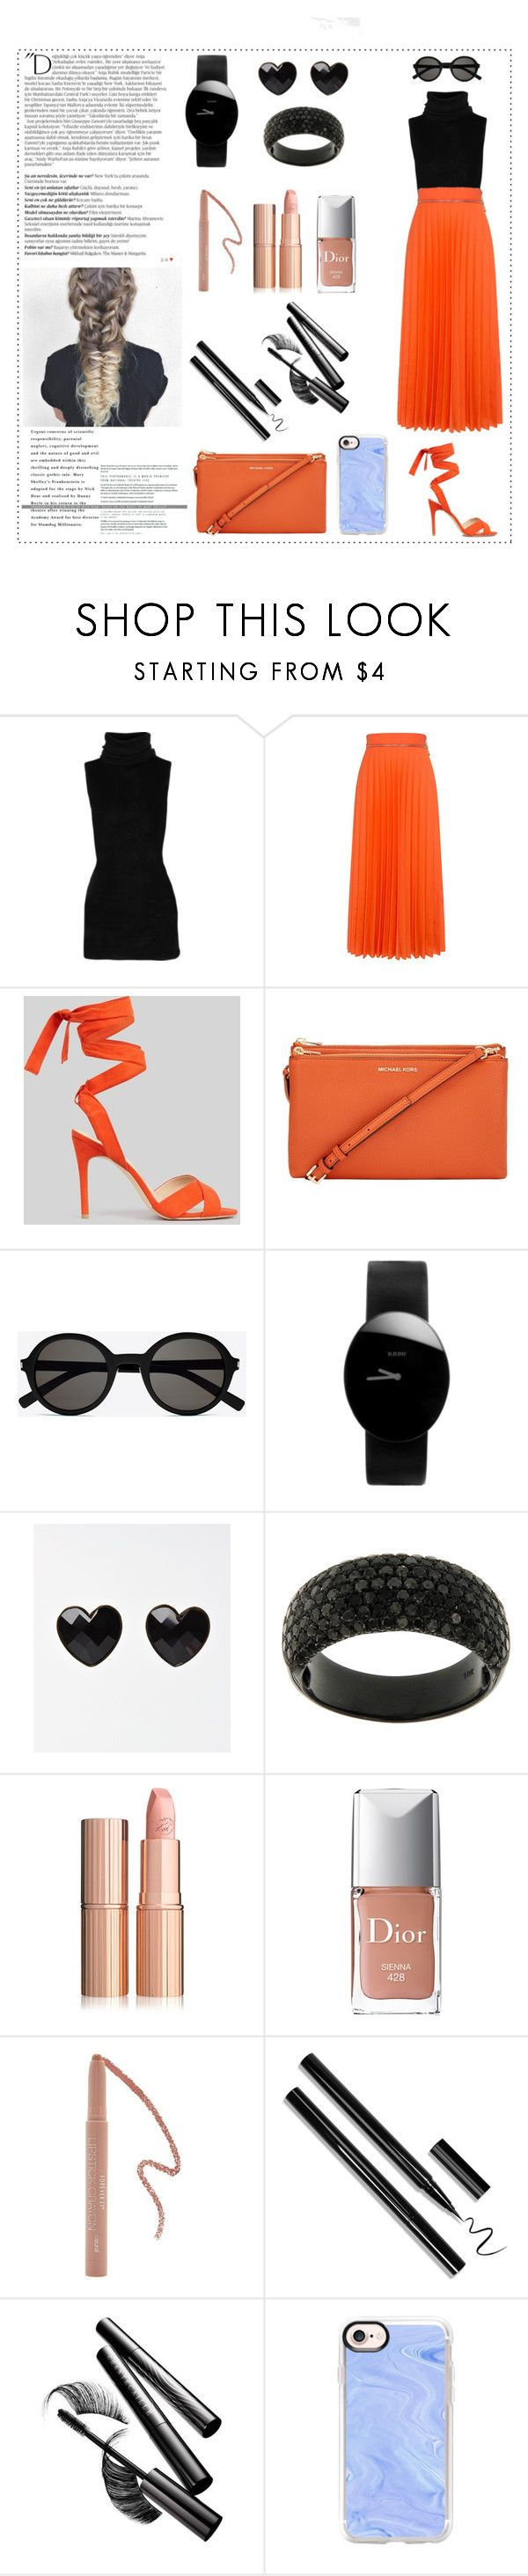 """Something Orange"" by danielle-valentine-666 ❤ liked on Polyvore featuring Rick Owens, Karen Walker, New Look, Balmain, Yves Saint Laurent, Rado, Christian Dior, Forever 21, Chantecaille and Casetify"